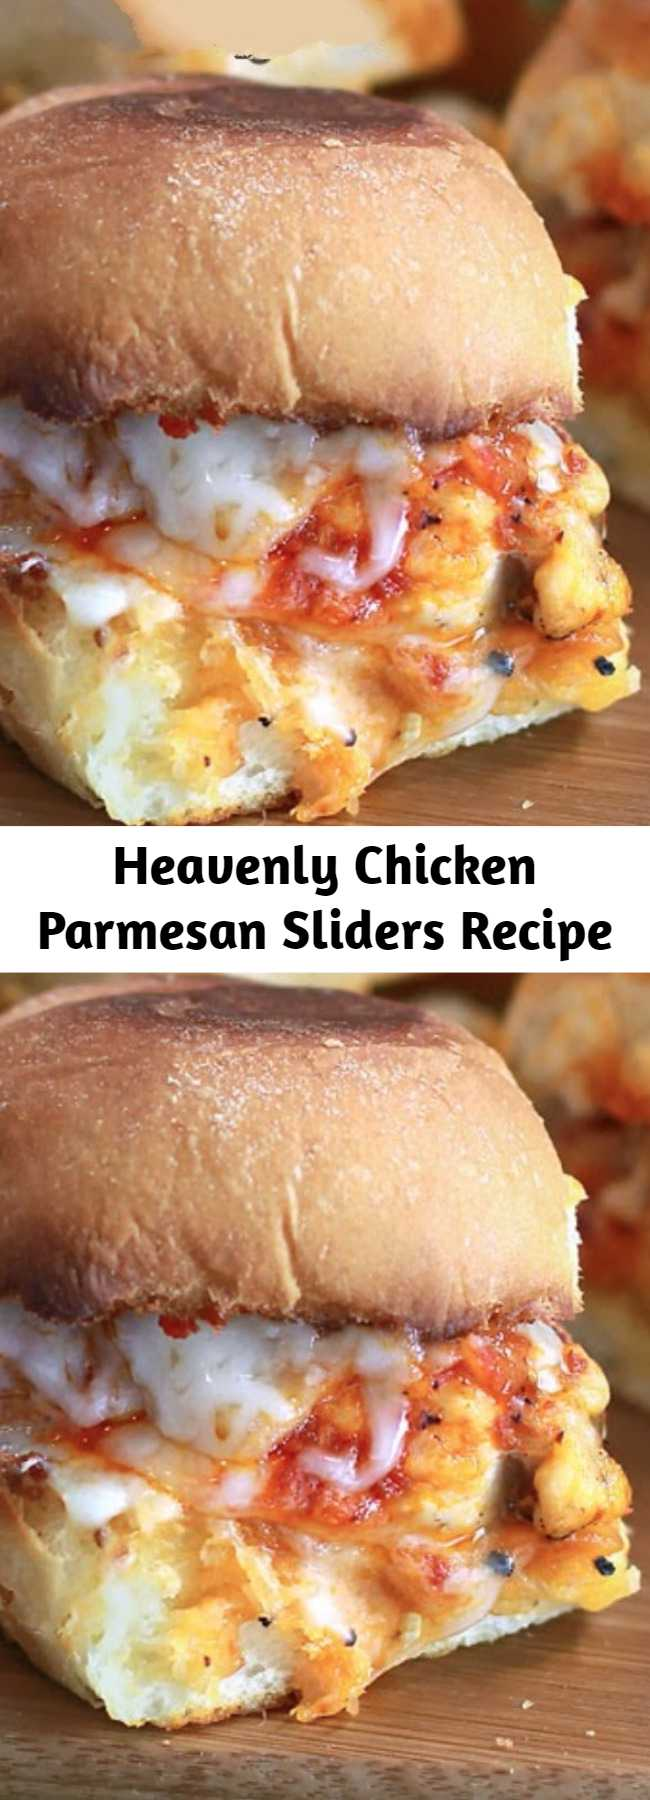 Heavenly Chicken Parmesan Sliders Recipe - Chicken Parmesan Sliders are sweet dinner rolls toasted with garlic butter and topped with Parmesan cheese. Slices of pan-fried chicken, marinara sauce and piles of mozzarella cheese top this picture perfect slider. It is a simple recipe that is absolutely heavenly and party-ready! #sliders #chickenparmesan